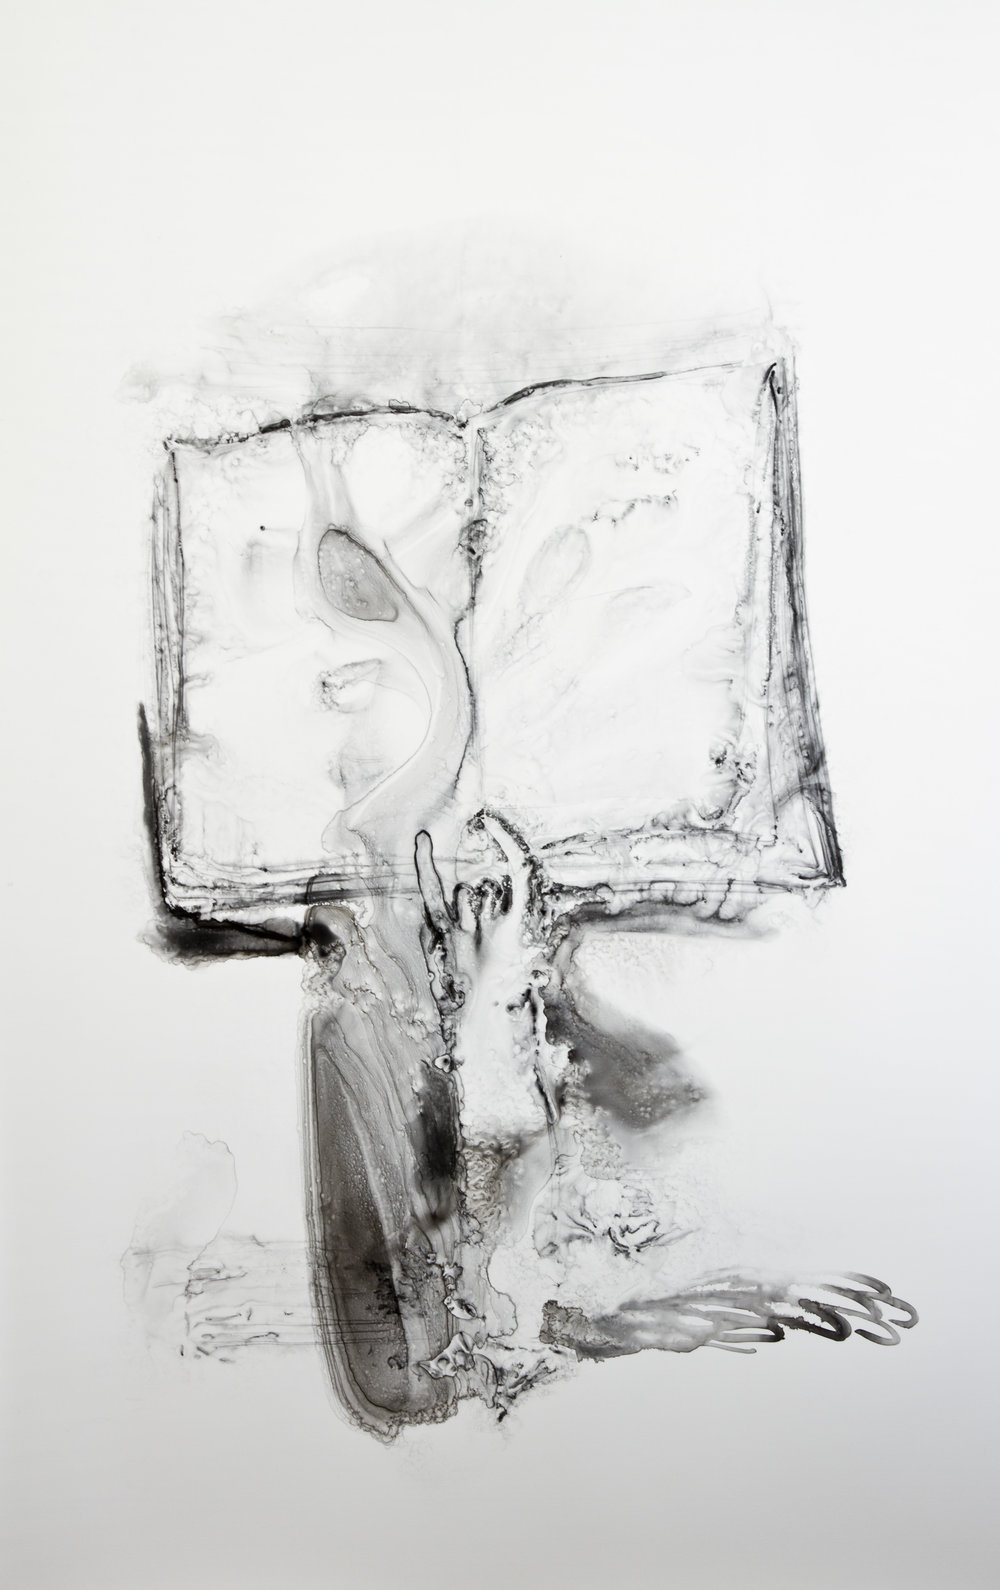 Signing the Book, 2016, watercolor on polypropylene, 60x40 inches